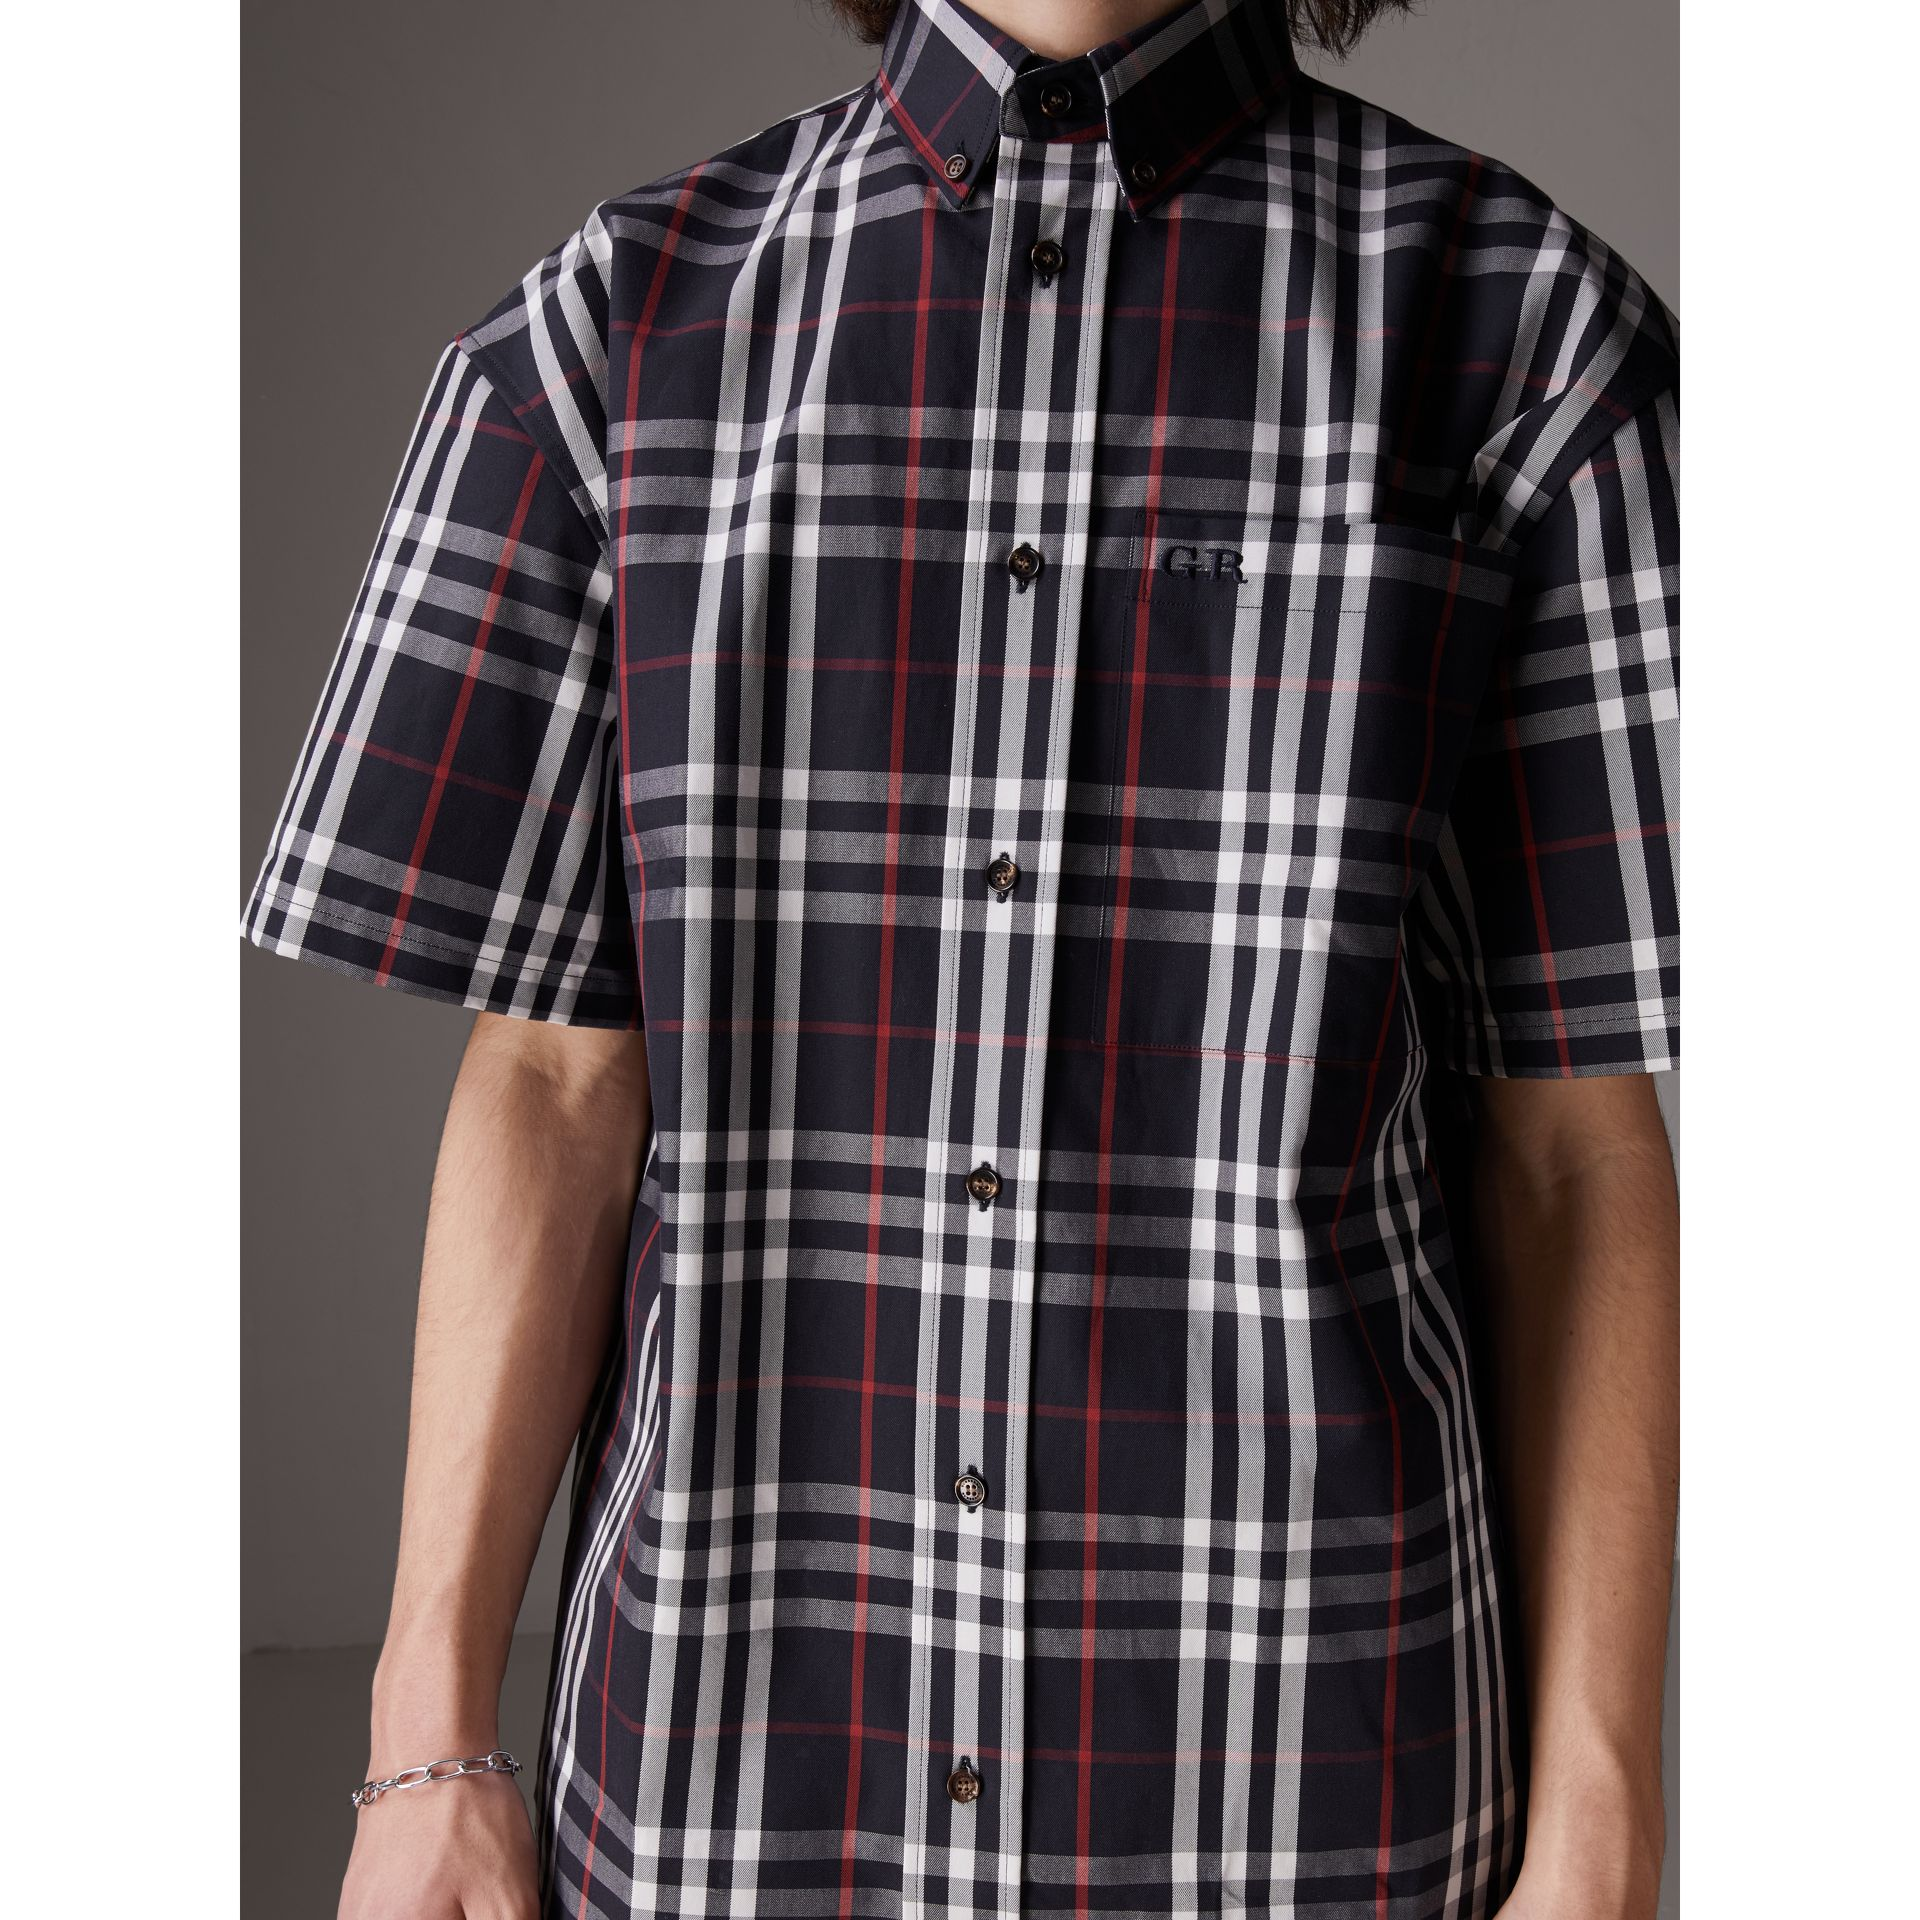 Gosha x Burberry Short-sleeve Check Shirt in Navy - Men | Burberry - gallery image 1